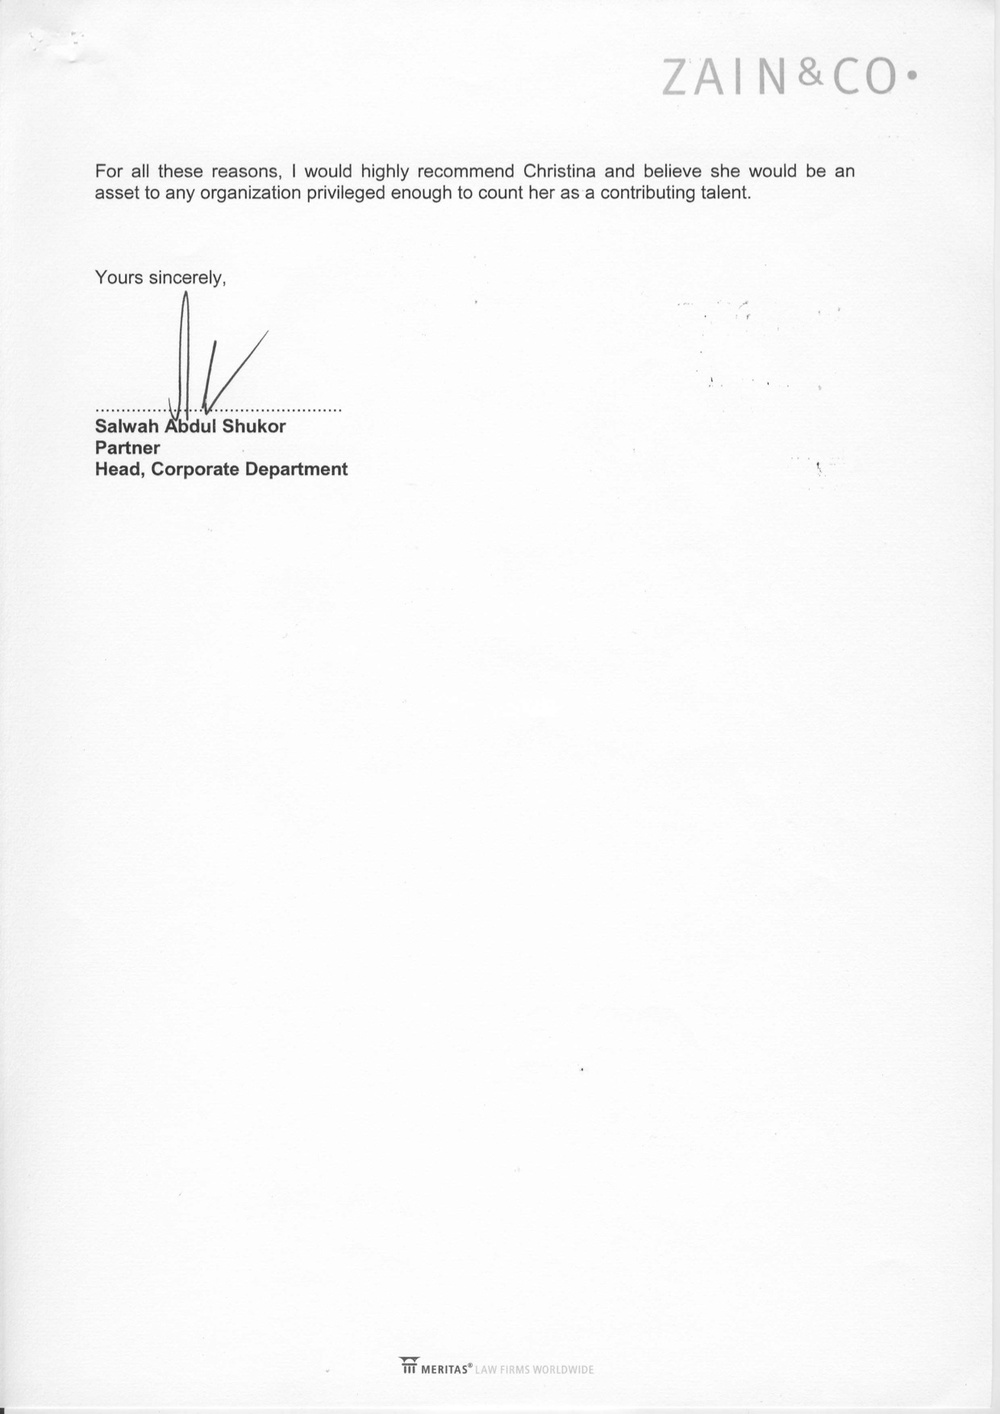 2013 - Legal - Zain & Co - Reference Letter p.2.jpg